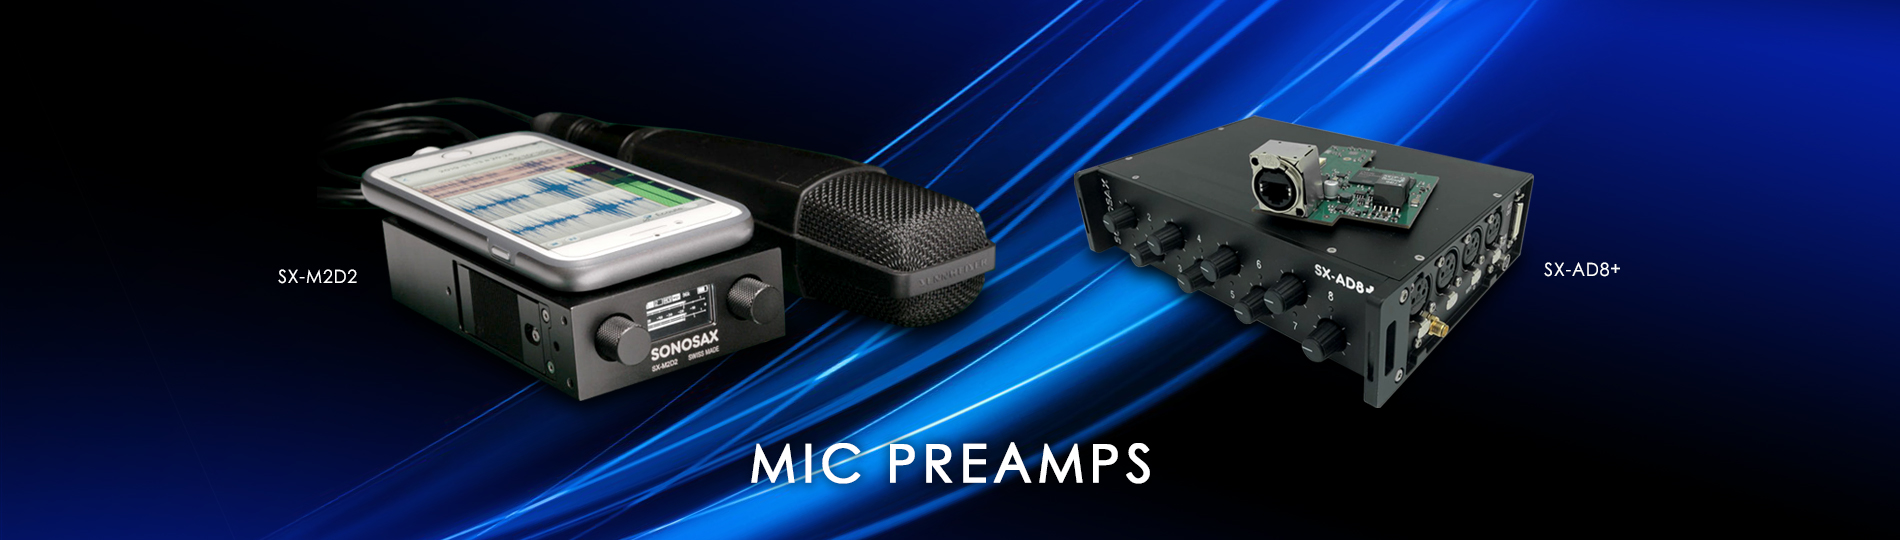 SonosaxMicPreamps_1900x540_02